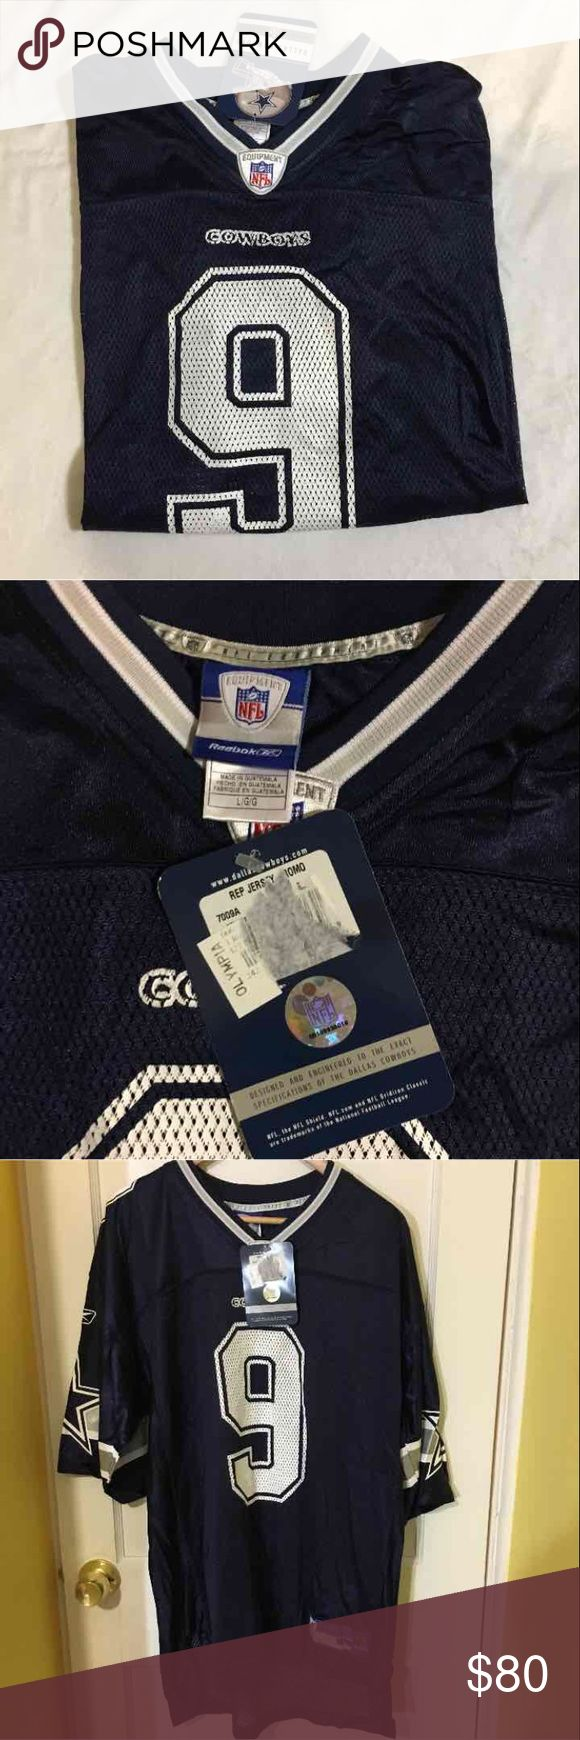 Authentic Tony Romo Jersey Authentic Tony Romo jersey, bought as a gift, football season ended and put in a bin and forgotten. Size L Reebok Other